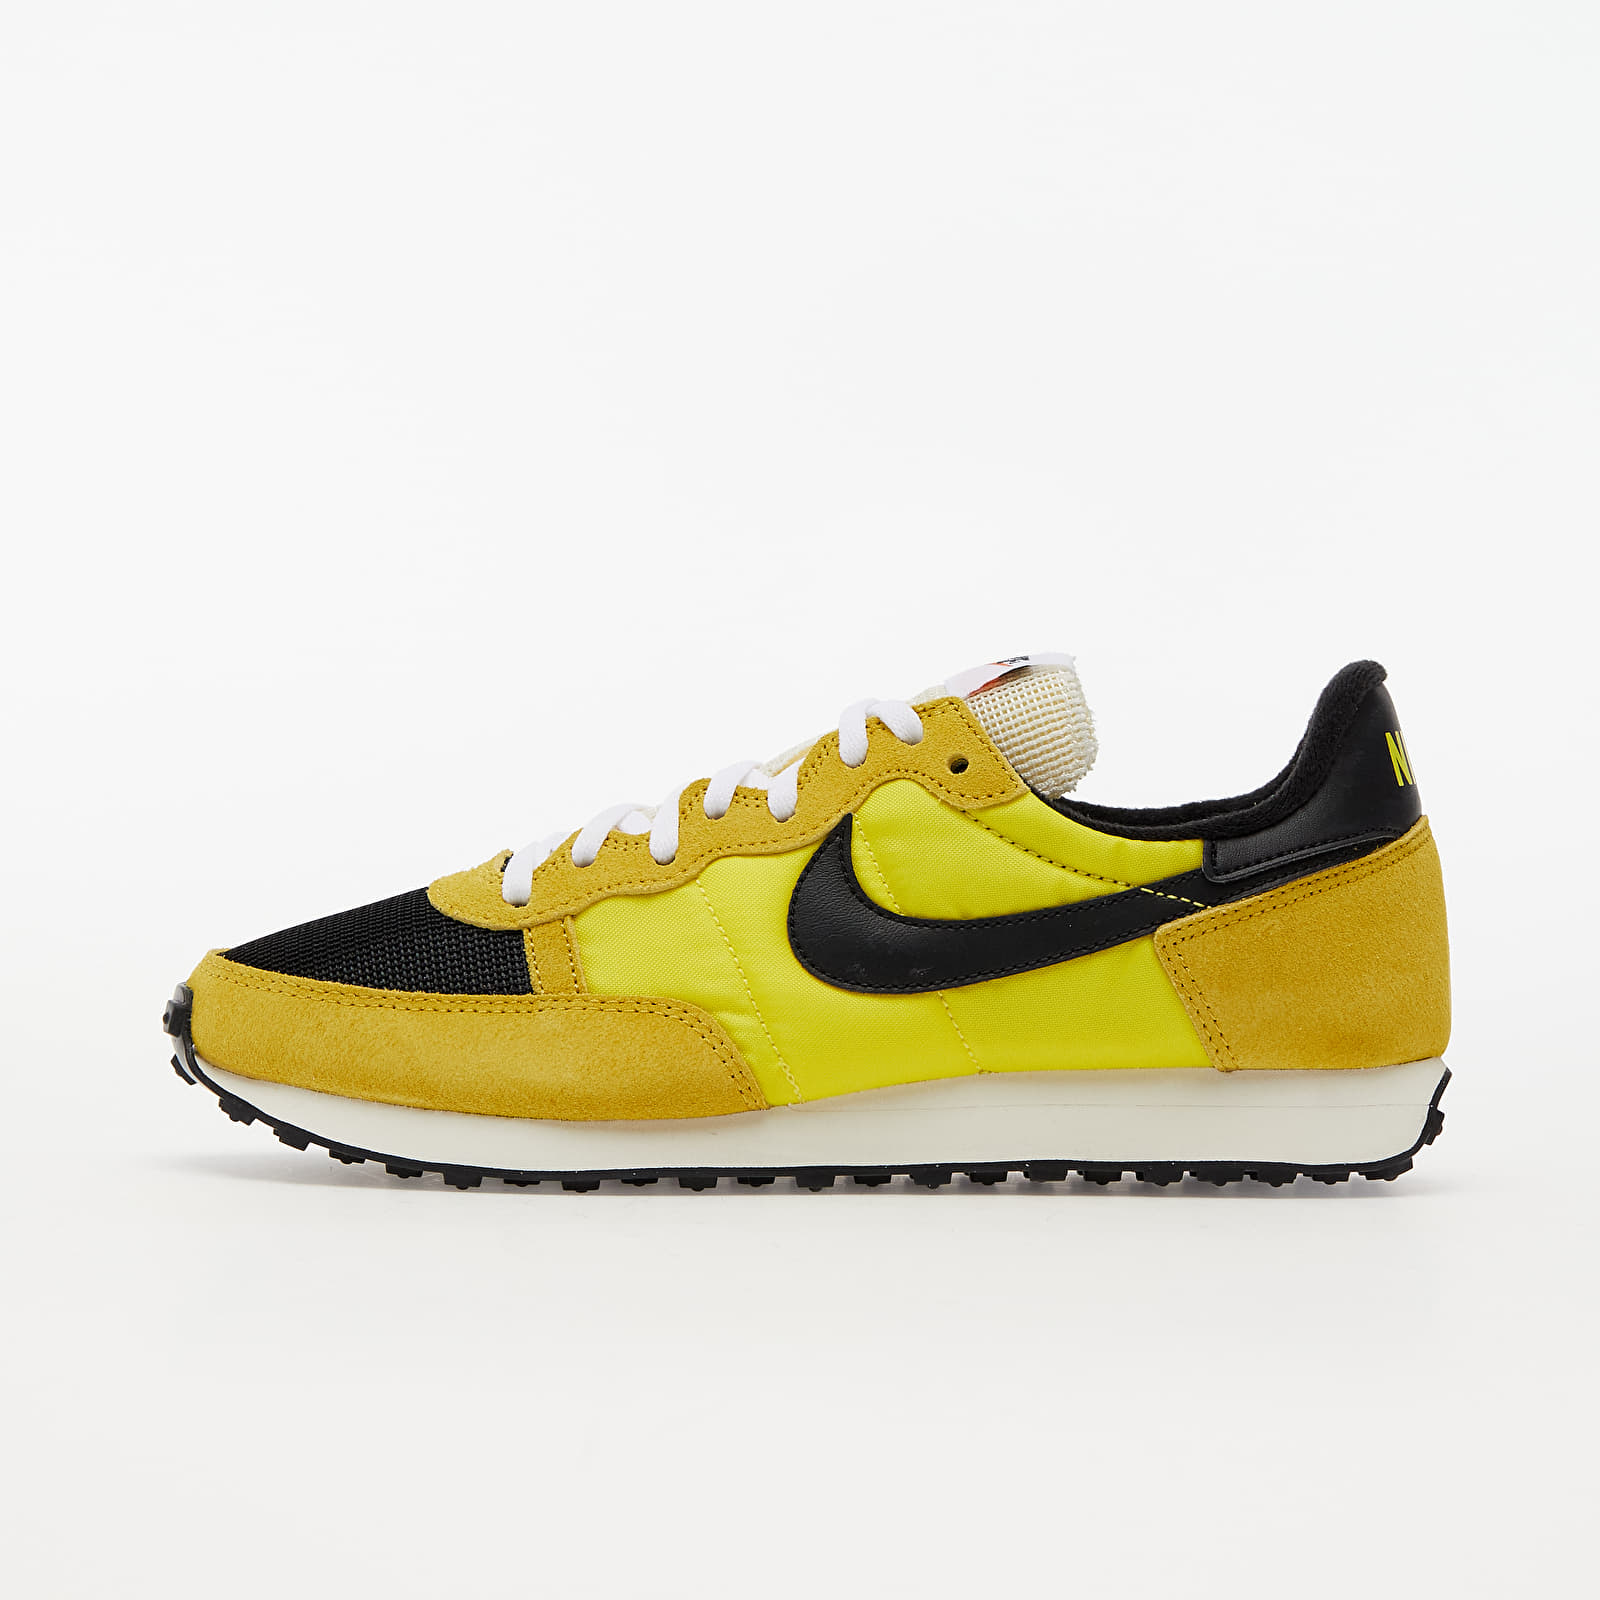 Nike Challenger OG Opti Yellow/ Black-Bright Citron-White EUR 44.5